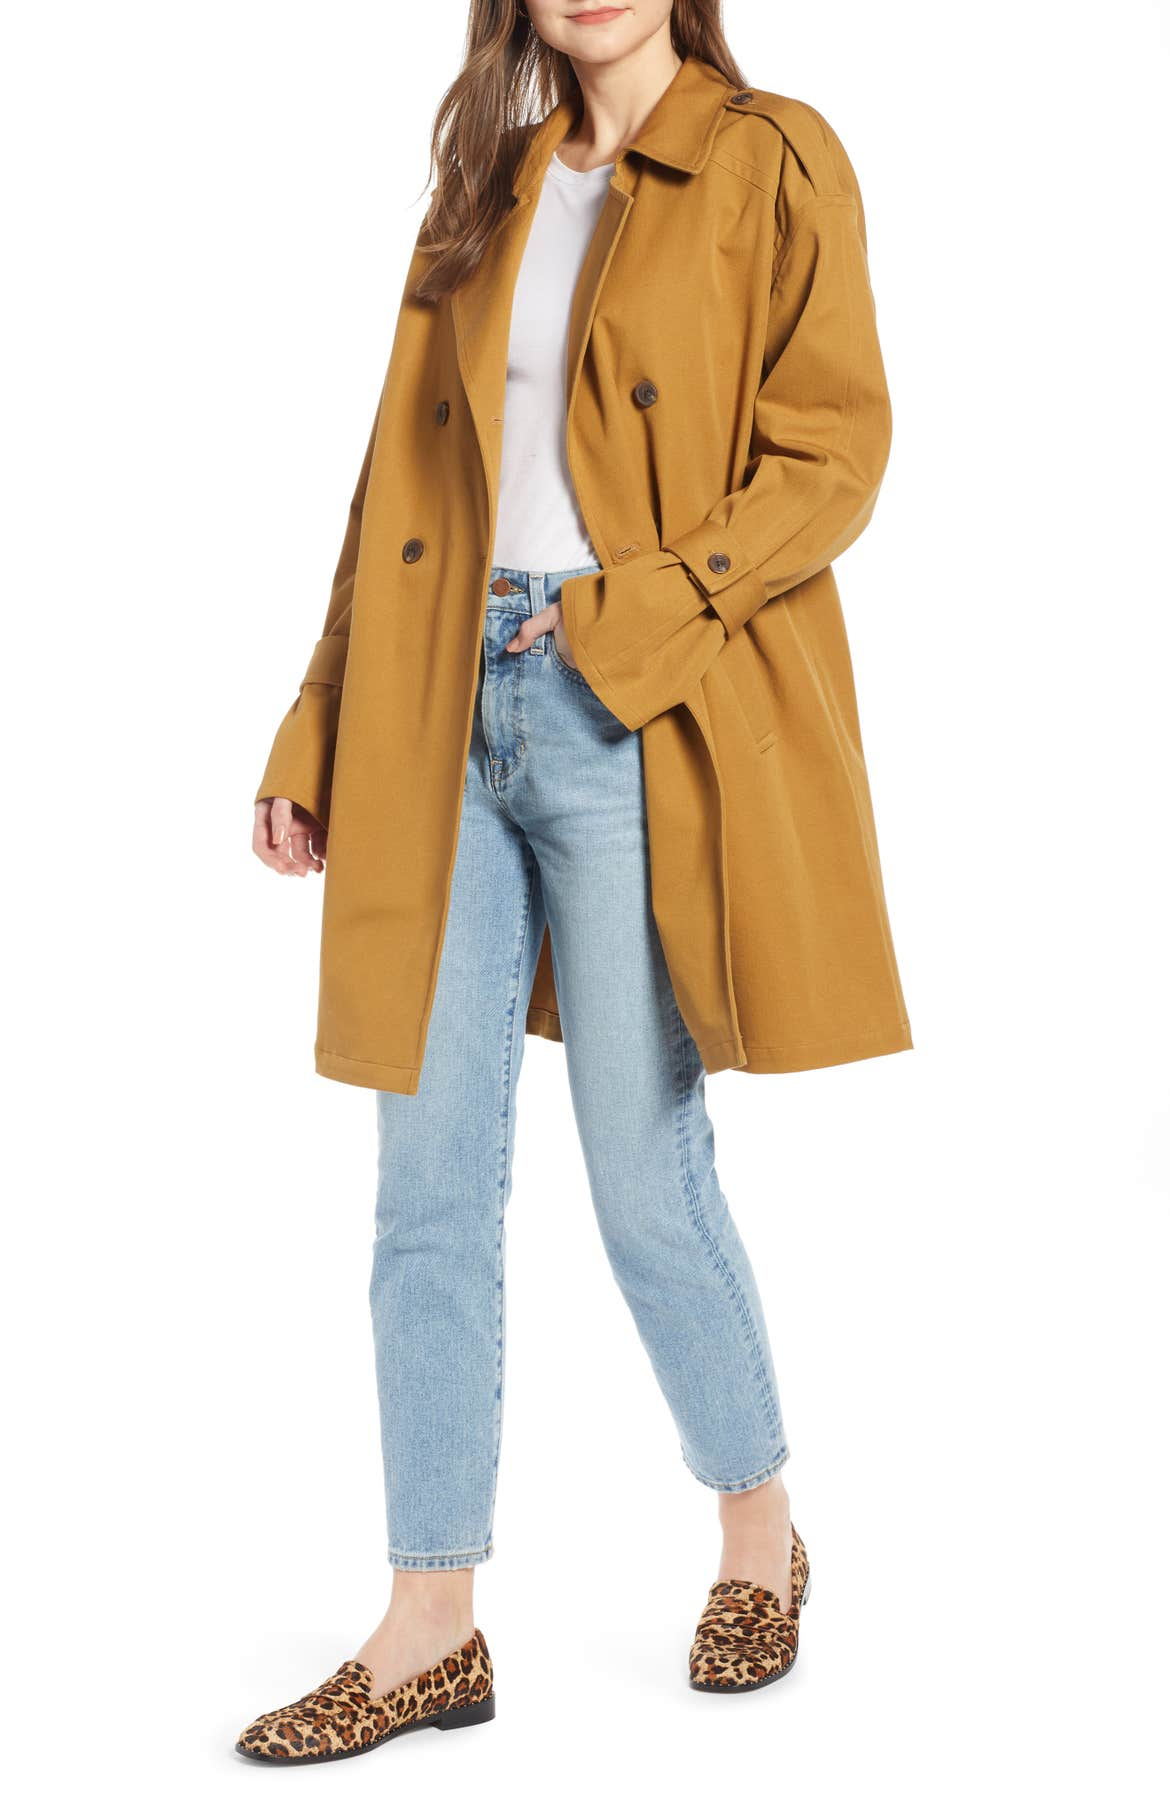 20 spring jackets for under $100 | GMA